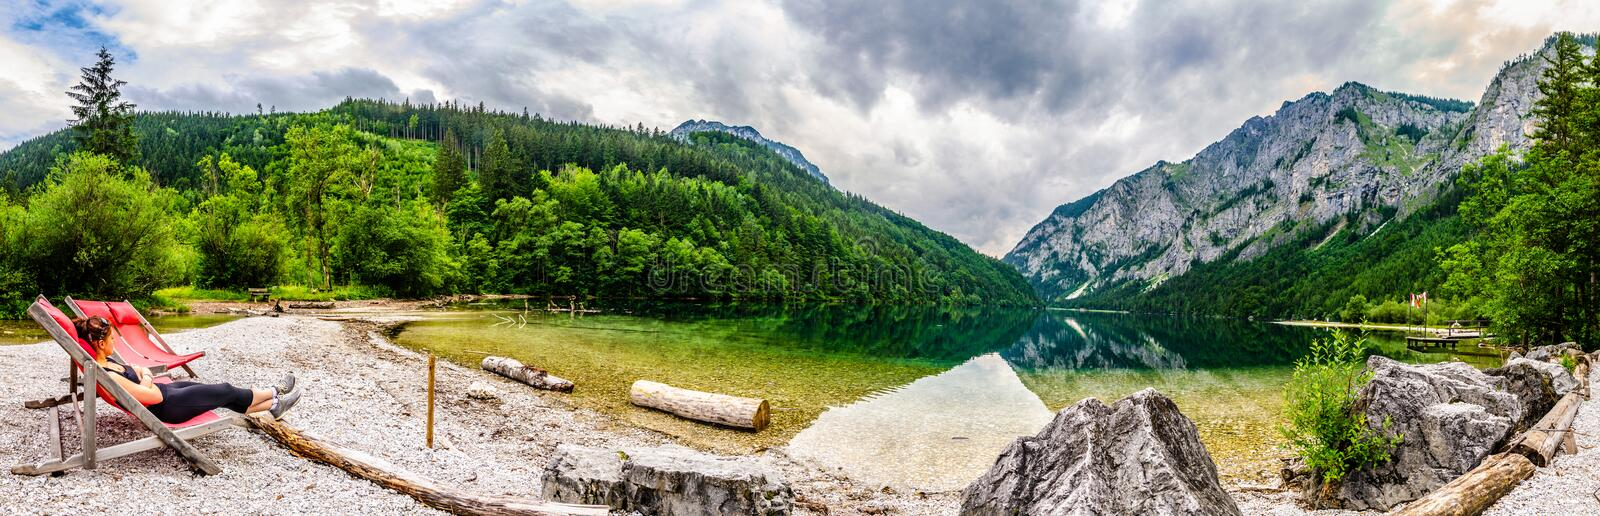 Landscape panorama with woman on sunbed next to the lake Leopoldsteinersee,Styria,Austria. Travel destination Austria. Landscape panorama with woman on sunbed royalty free stock photos